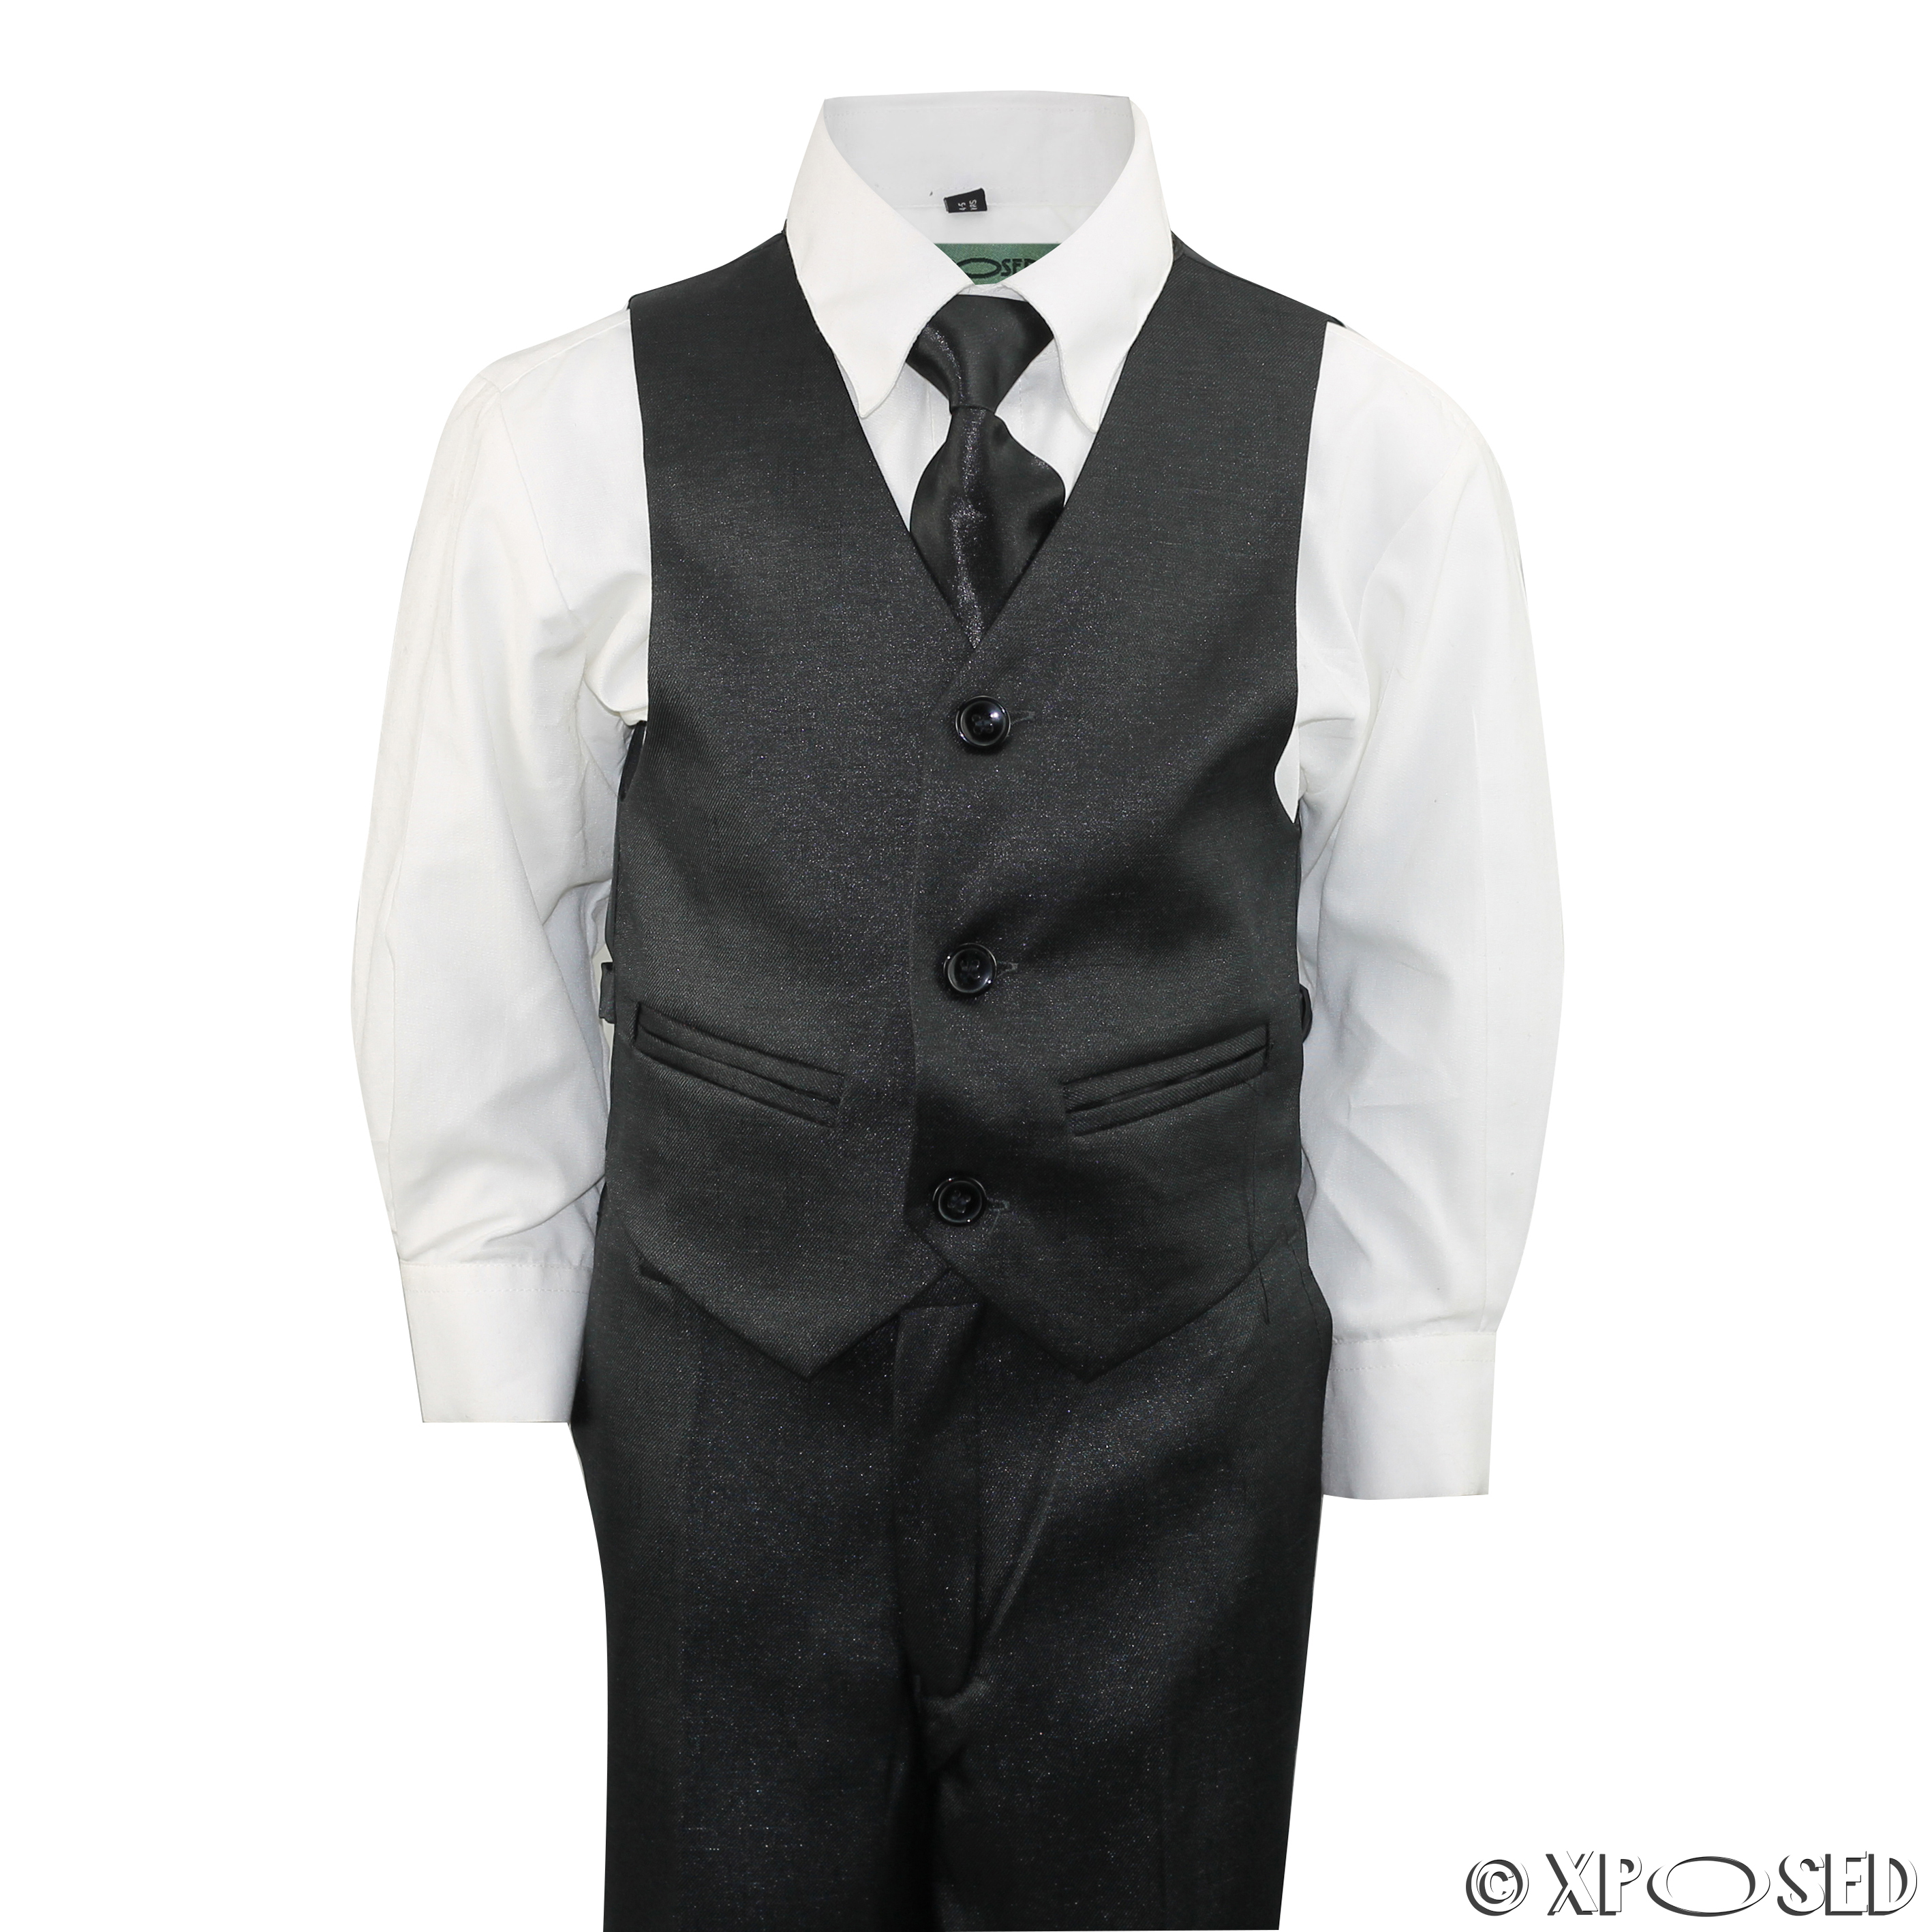 1719334229e12 New Kids Page Boys 3 Piece Shiny Black Tuxedo Suit Wedding Party Age 2 - 12  Year